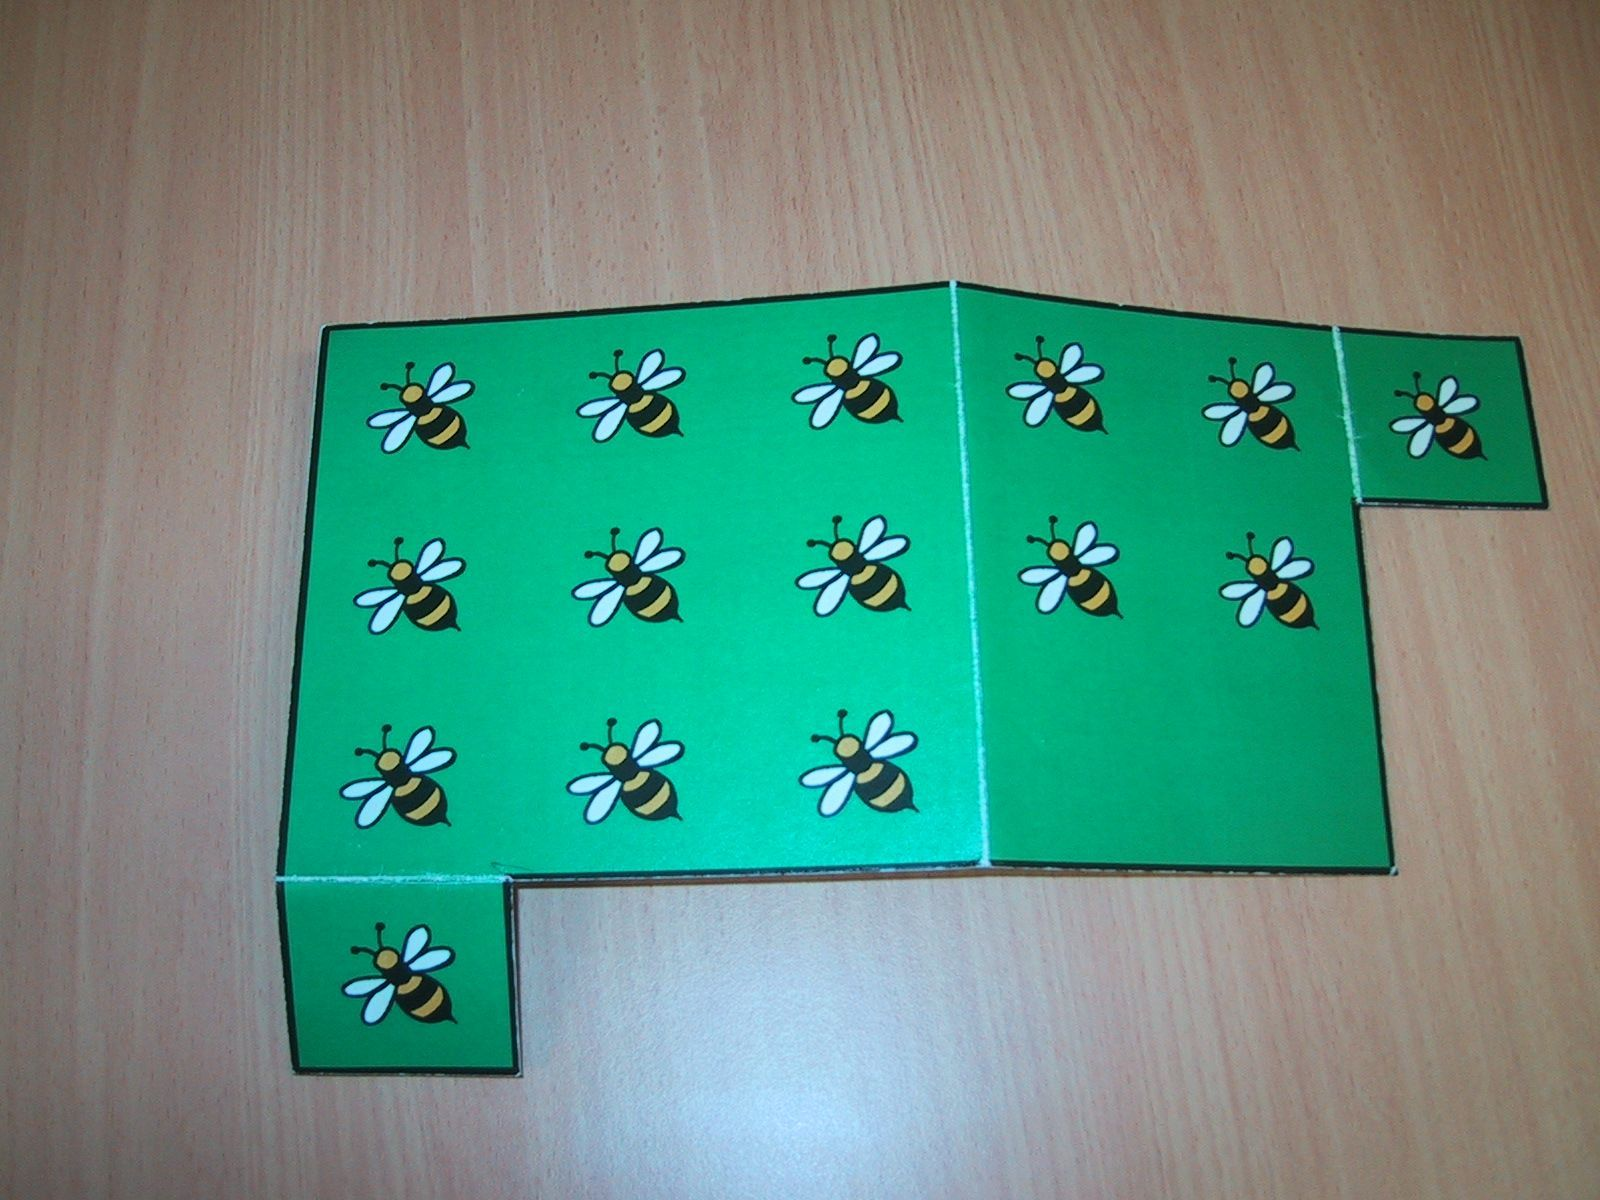 A physical representation of the use 10 addition strategy in mathematics.